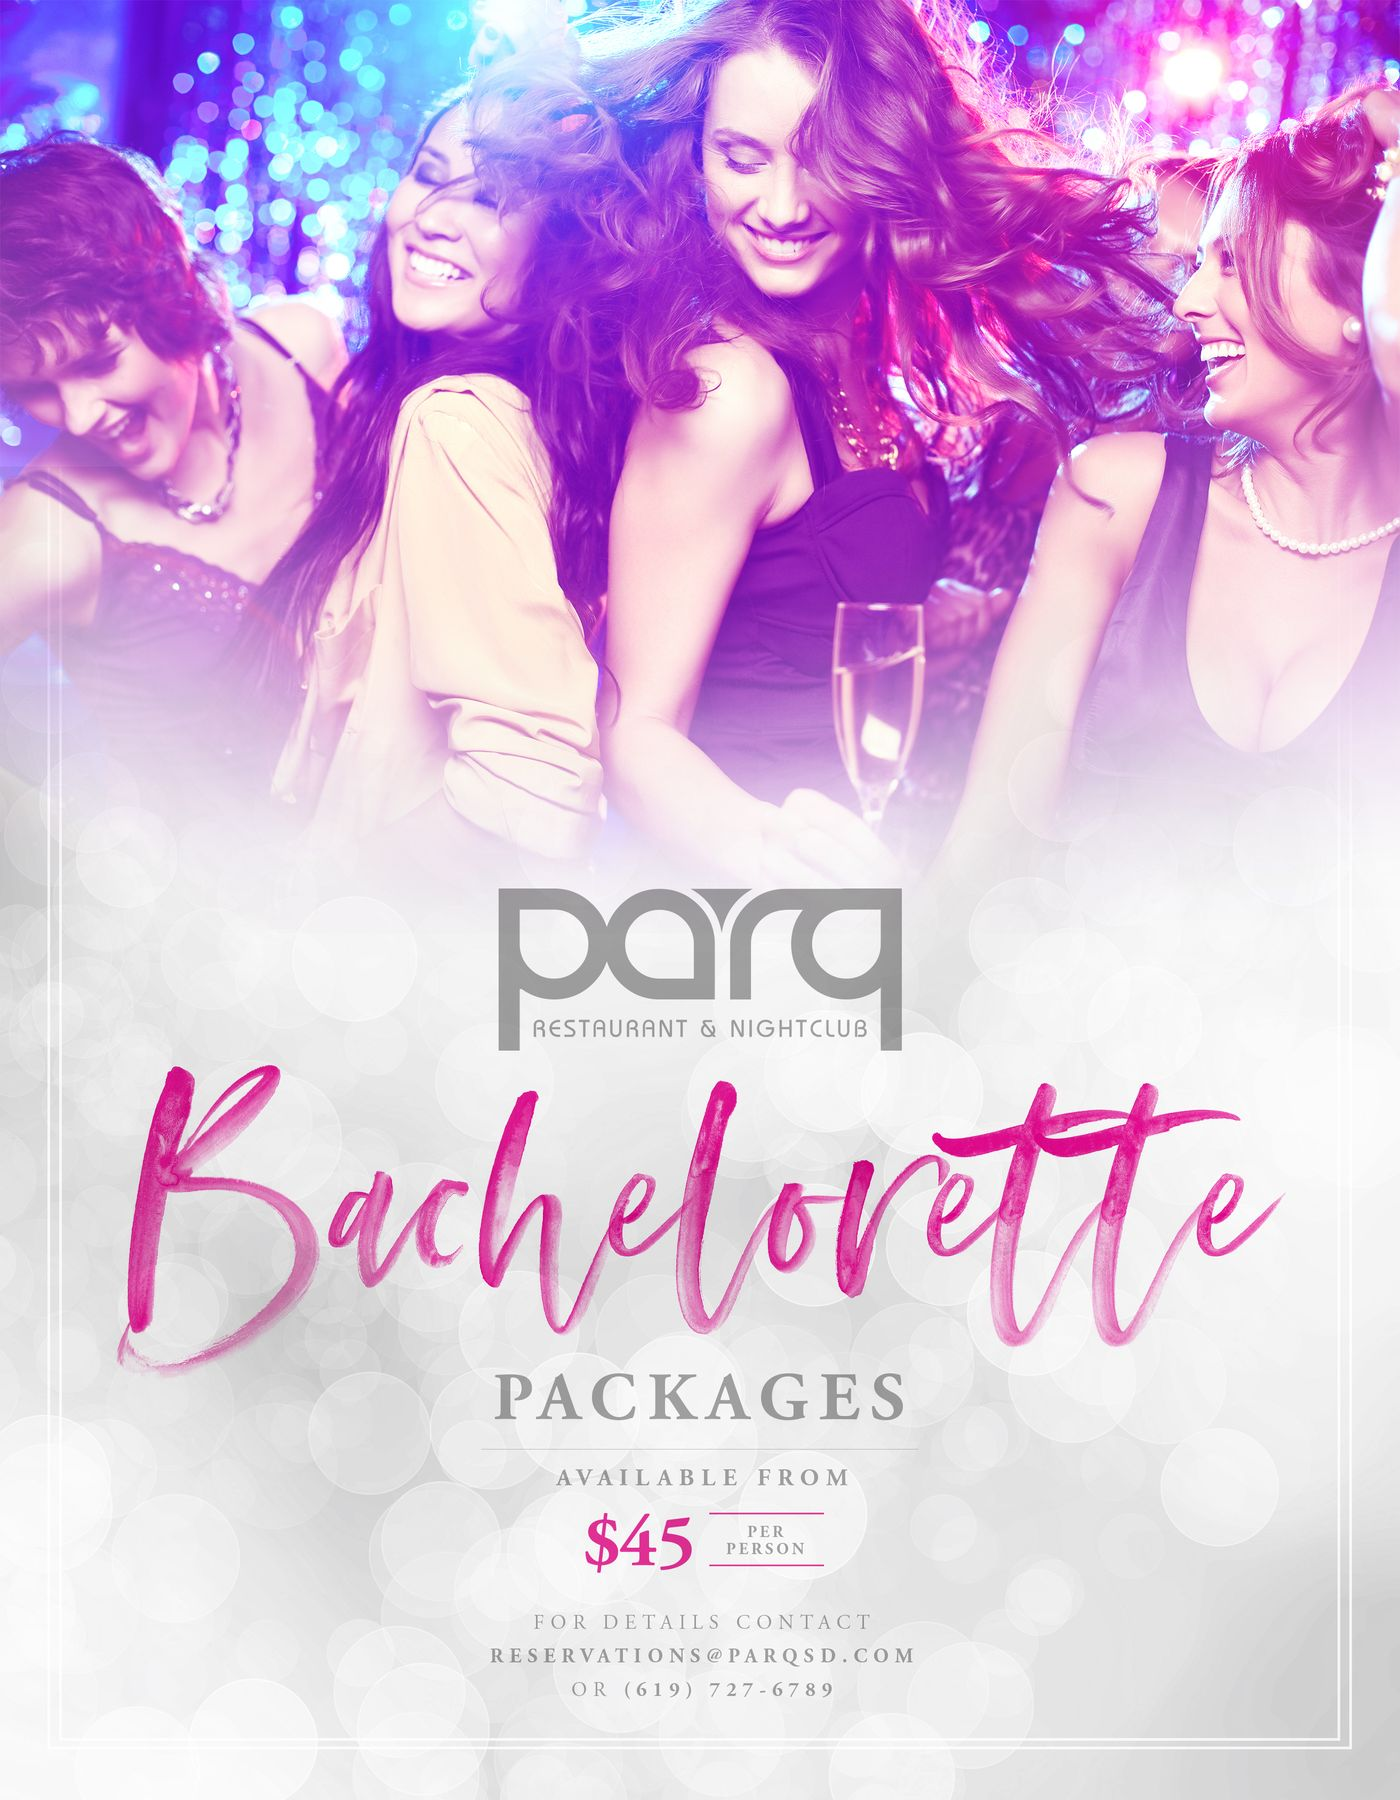 Parq Bachelorette package.jpg